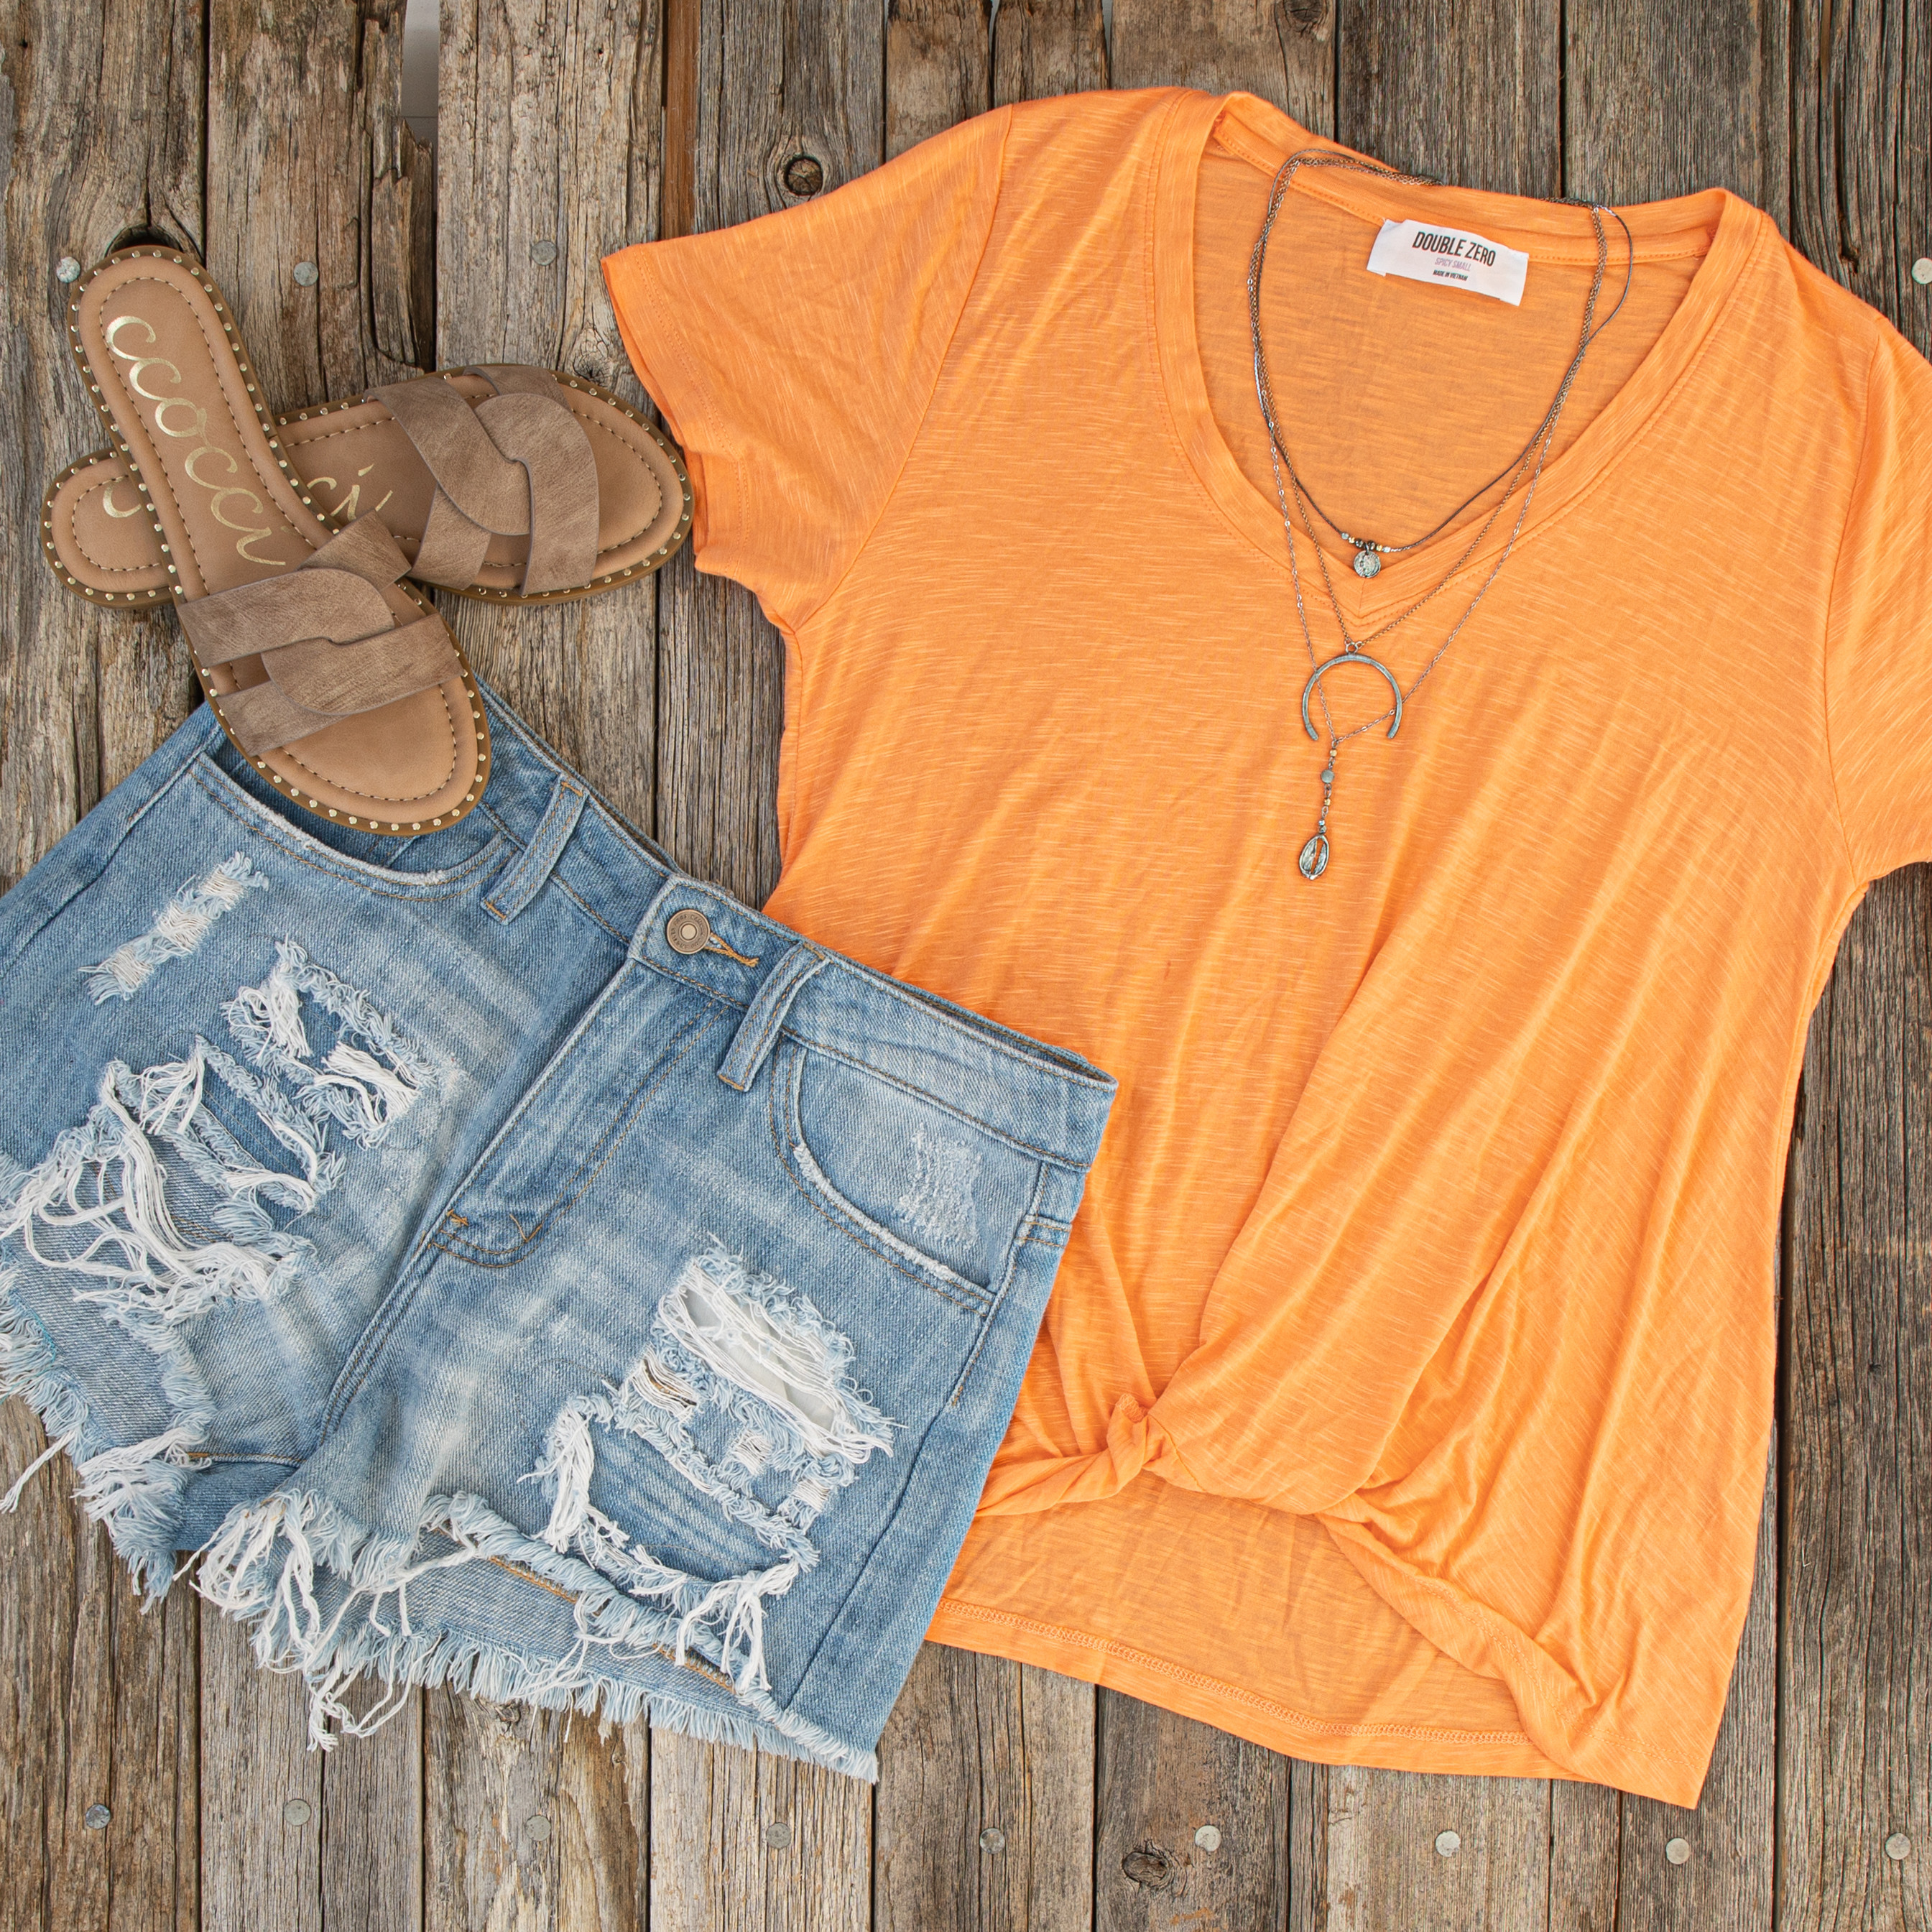 Light Wash High Rise Denim Shorts with Distressed Details